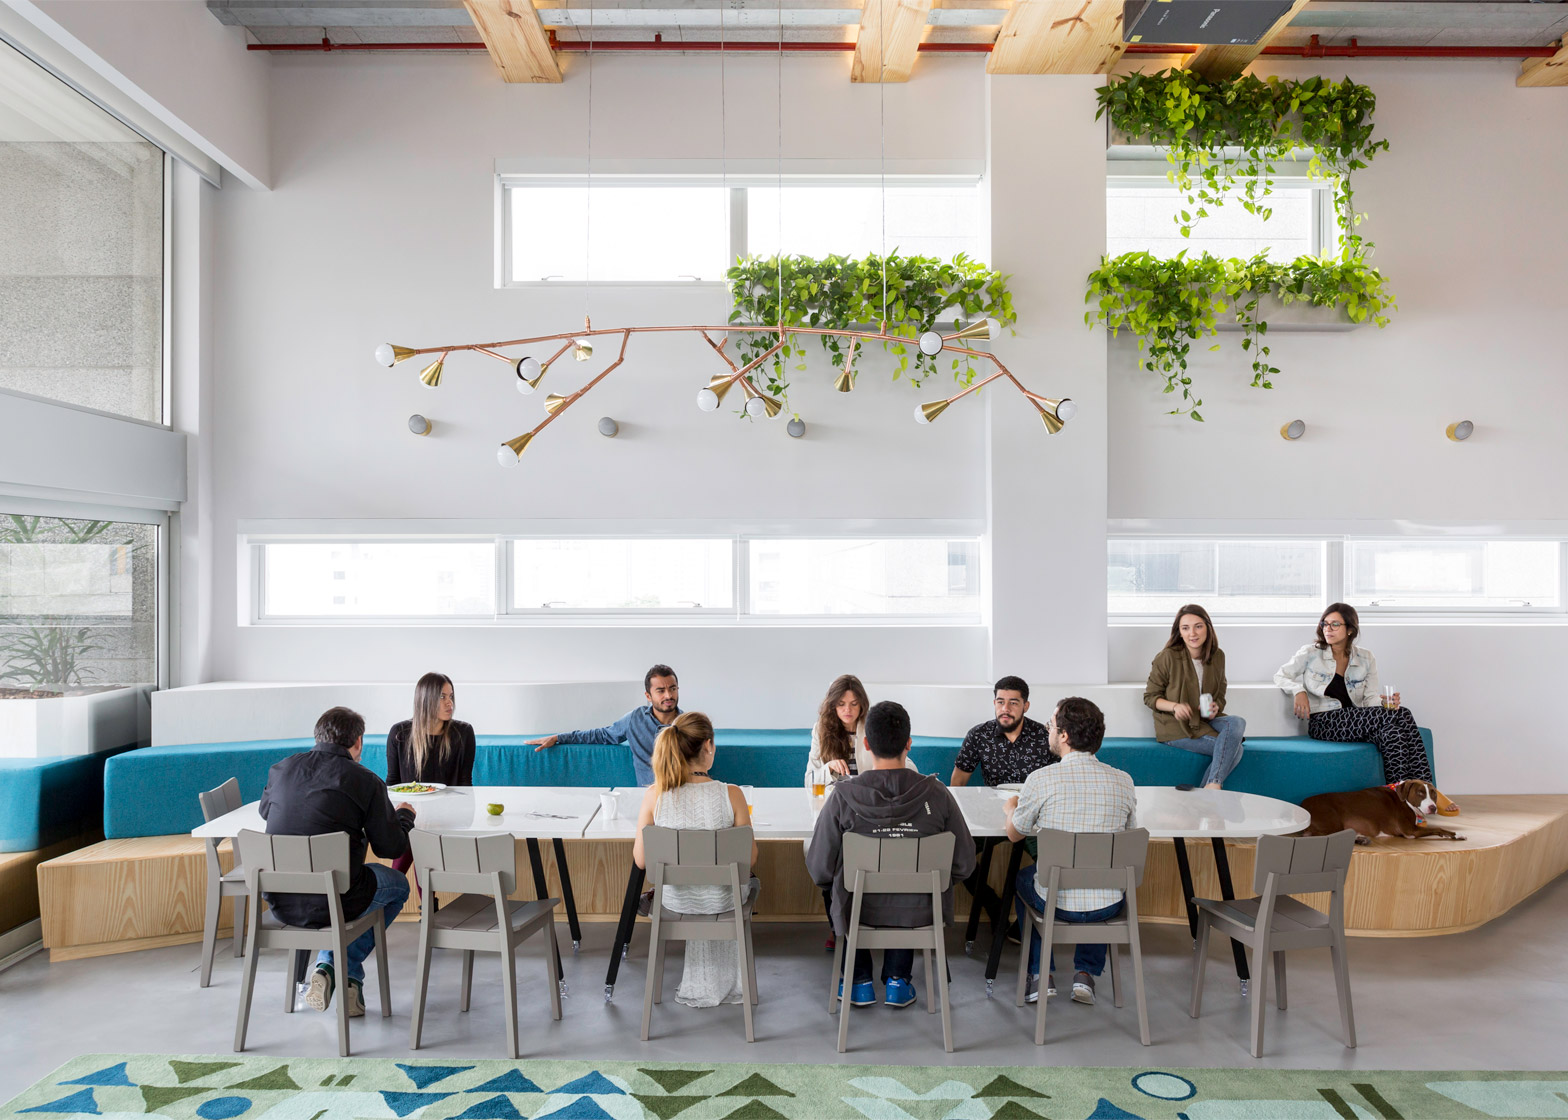 airbnb-offices_sao-paulo_mm18_dezeen_1568_4